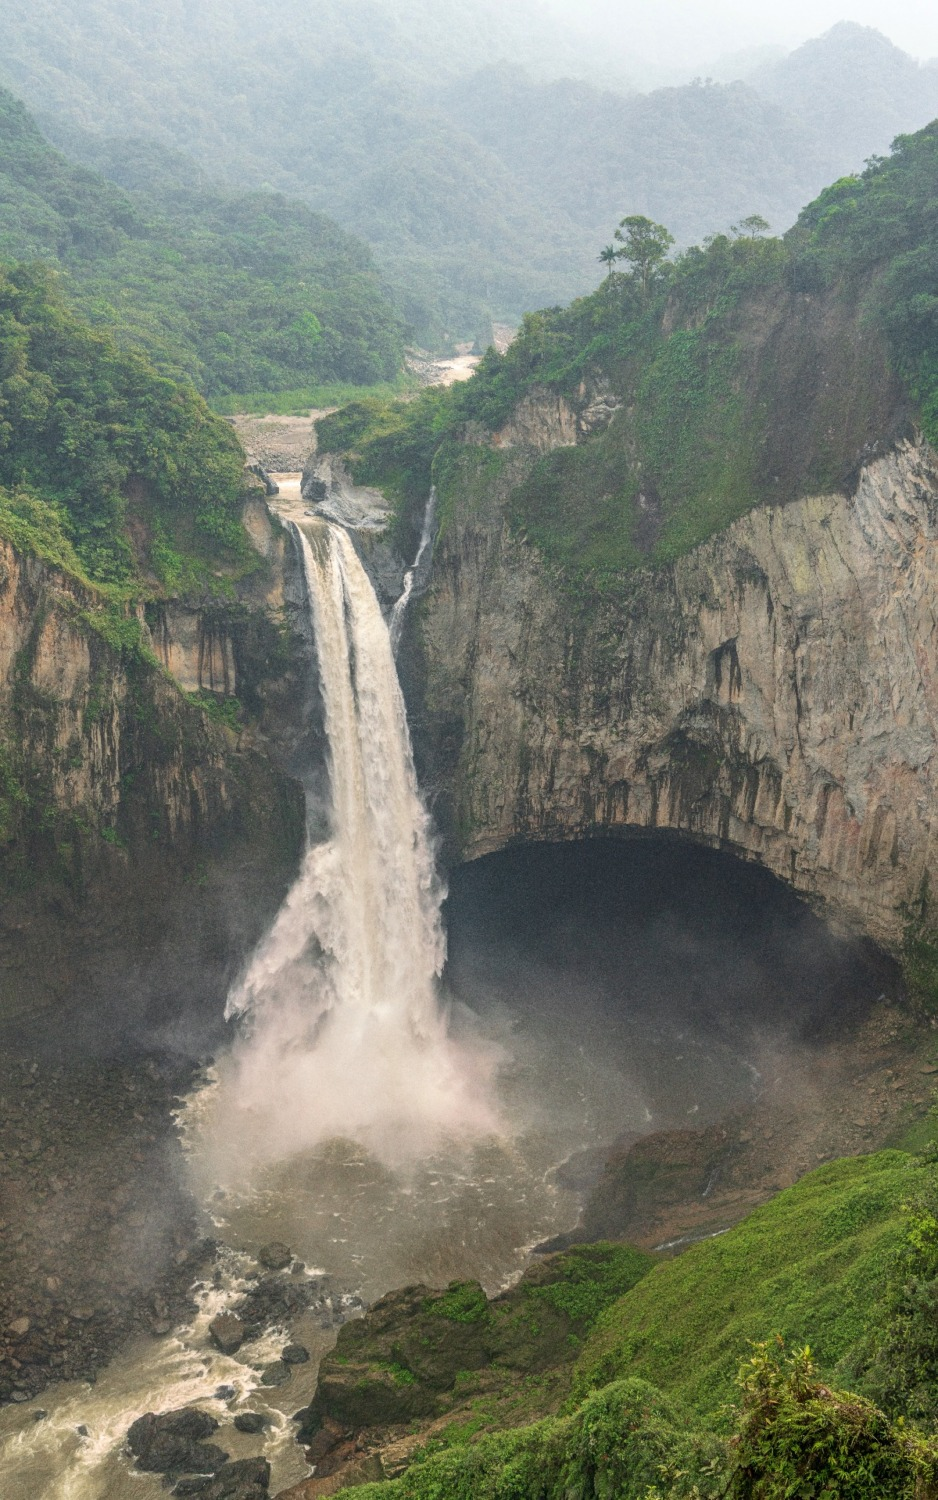 San Rafael falls centers the image as thew Quijos river plunges 500ft to the pool below.